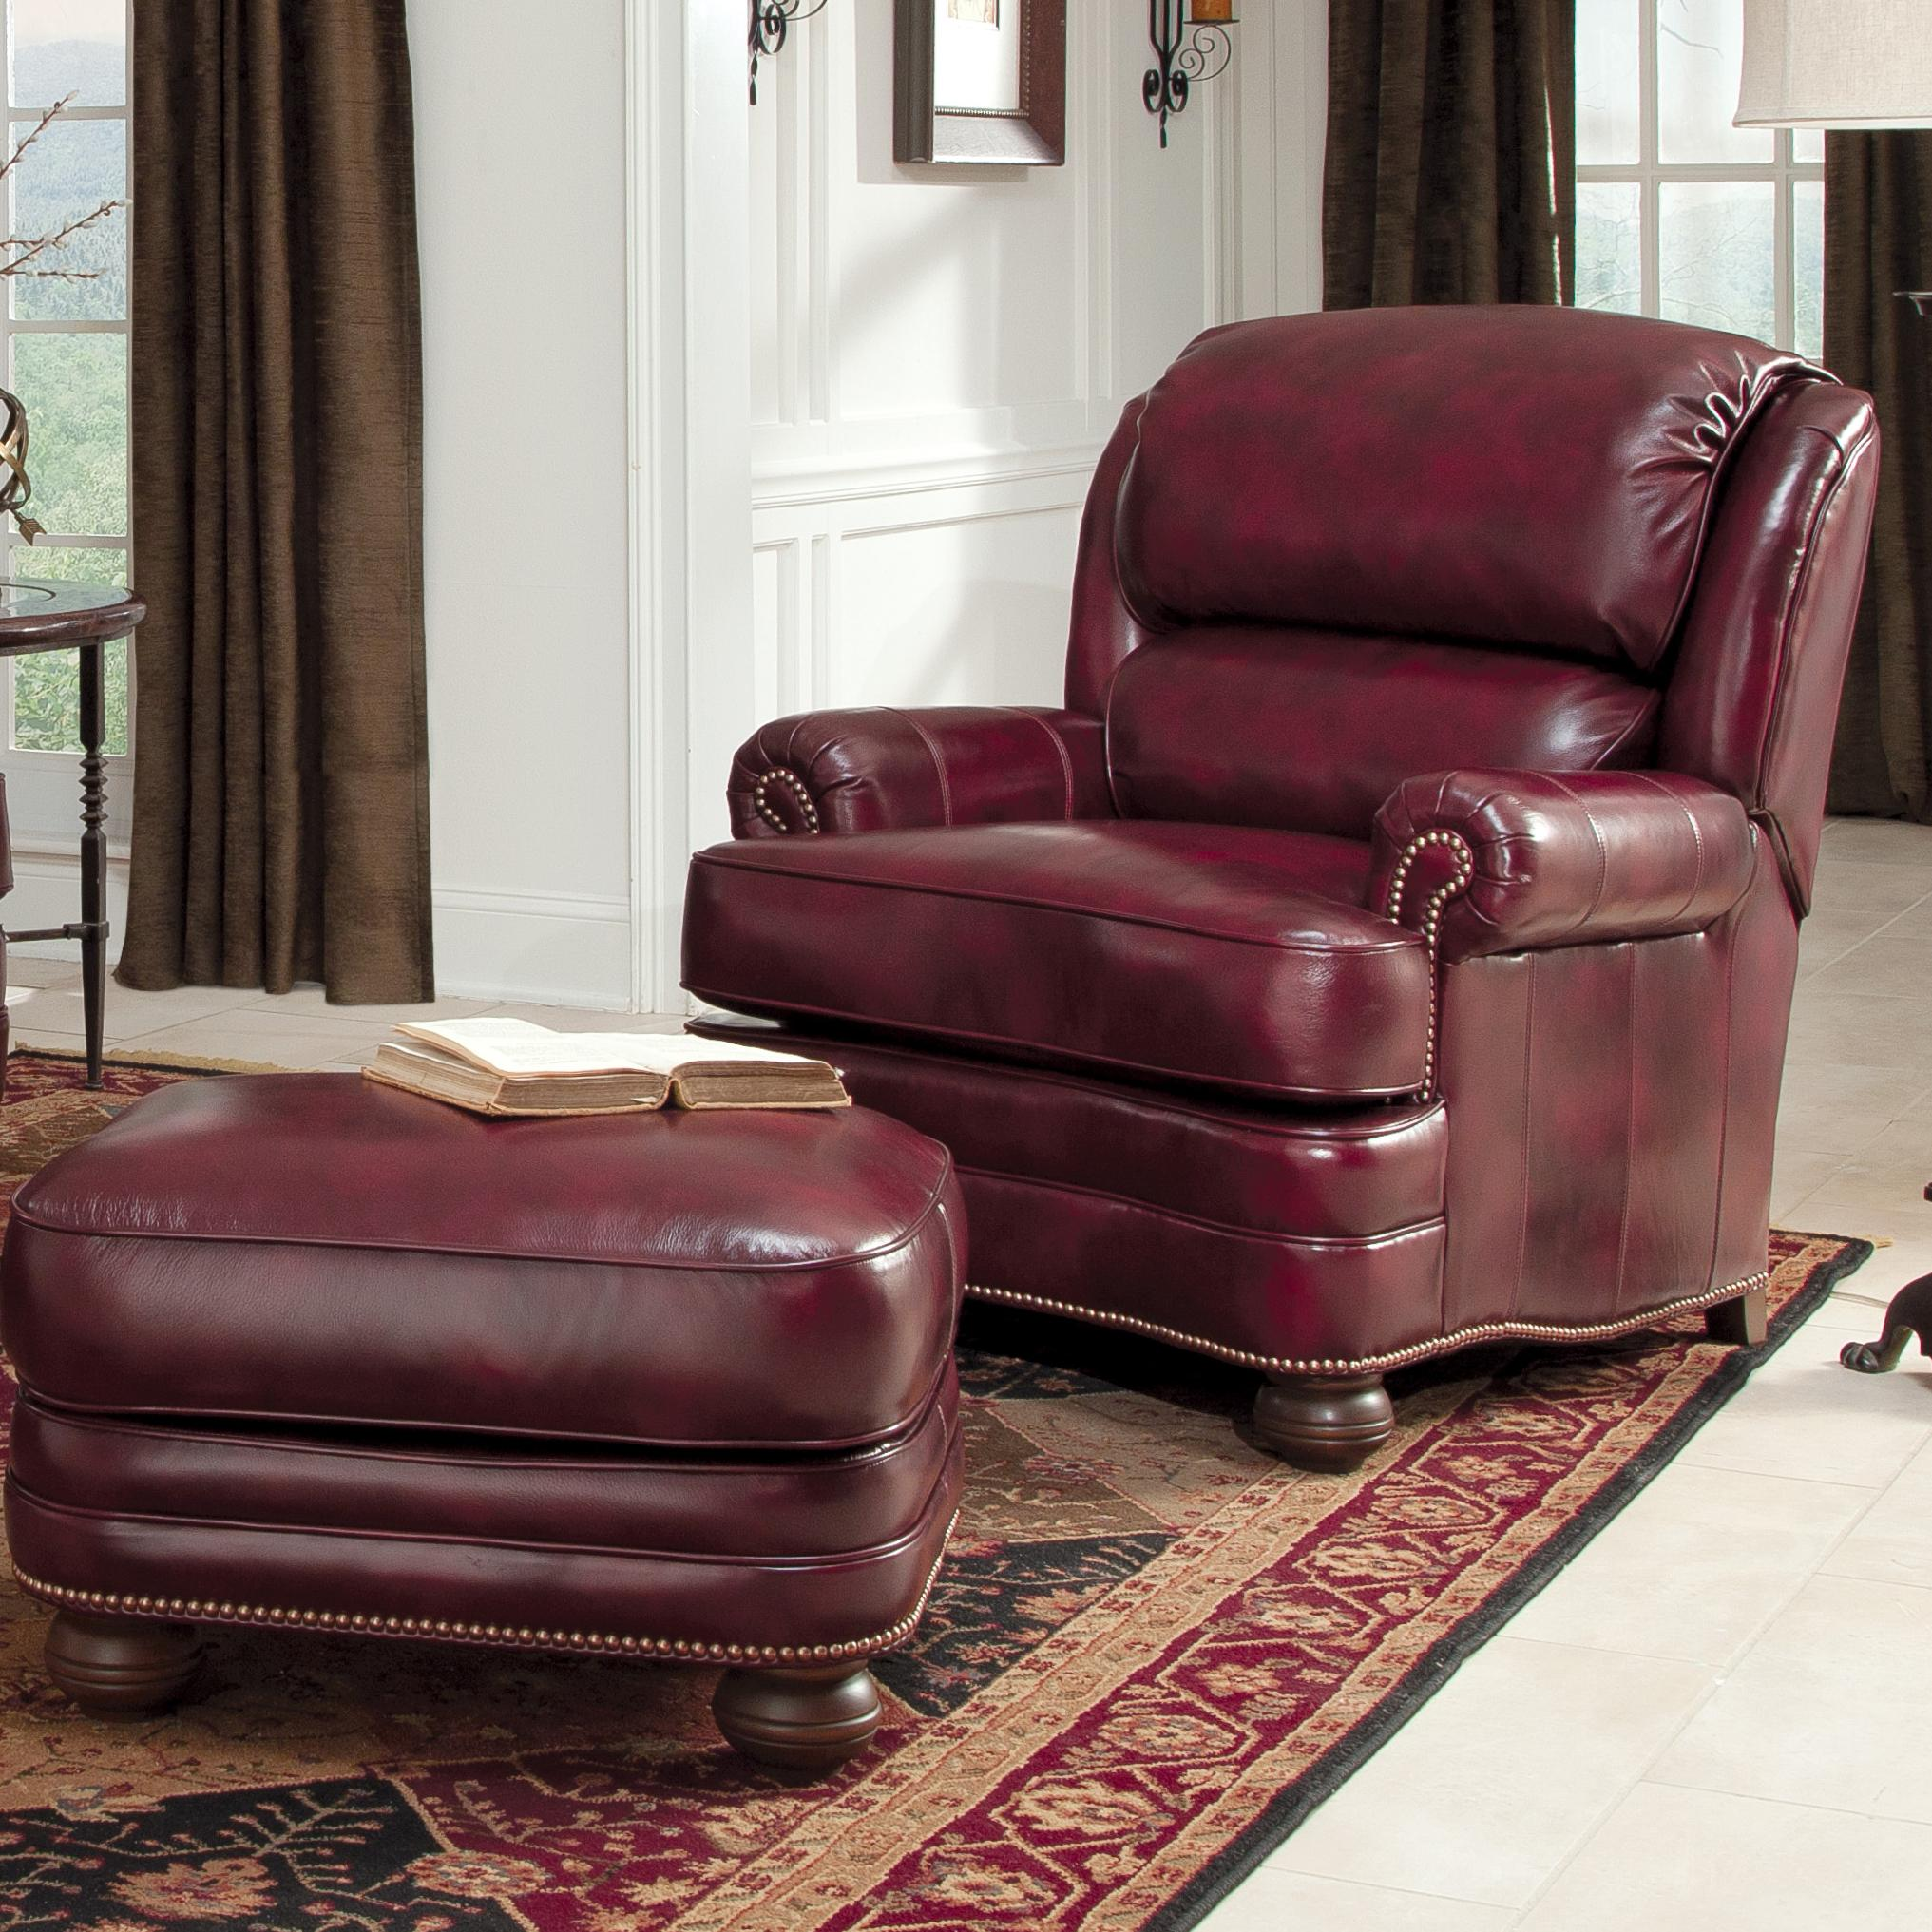 311 Upholstered Chair and Ottoman by Smith Brothers at Turk Furniture